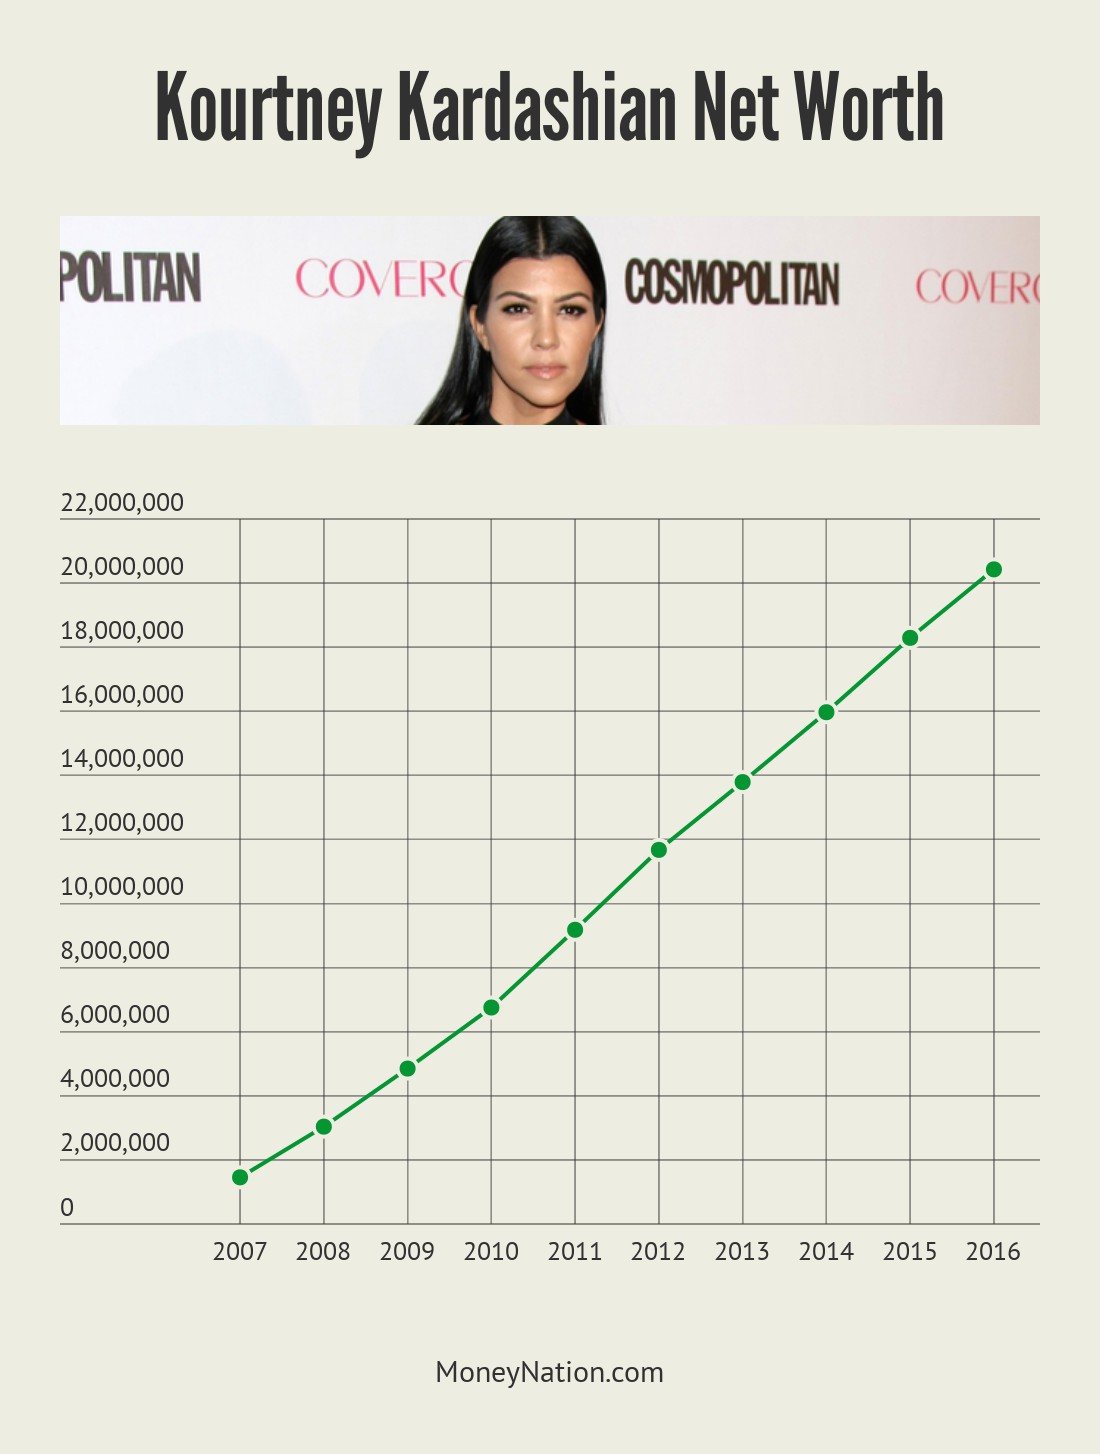 Kourtney Kardashian Net Worth Timeline